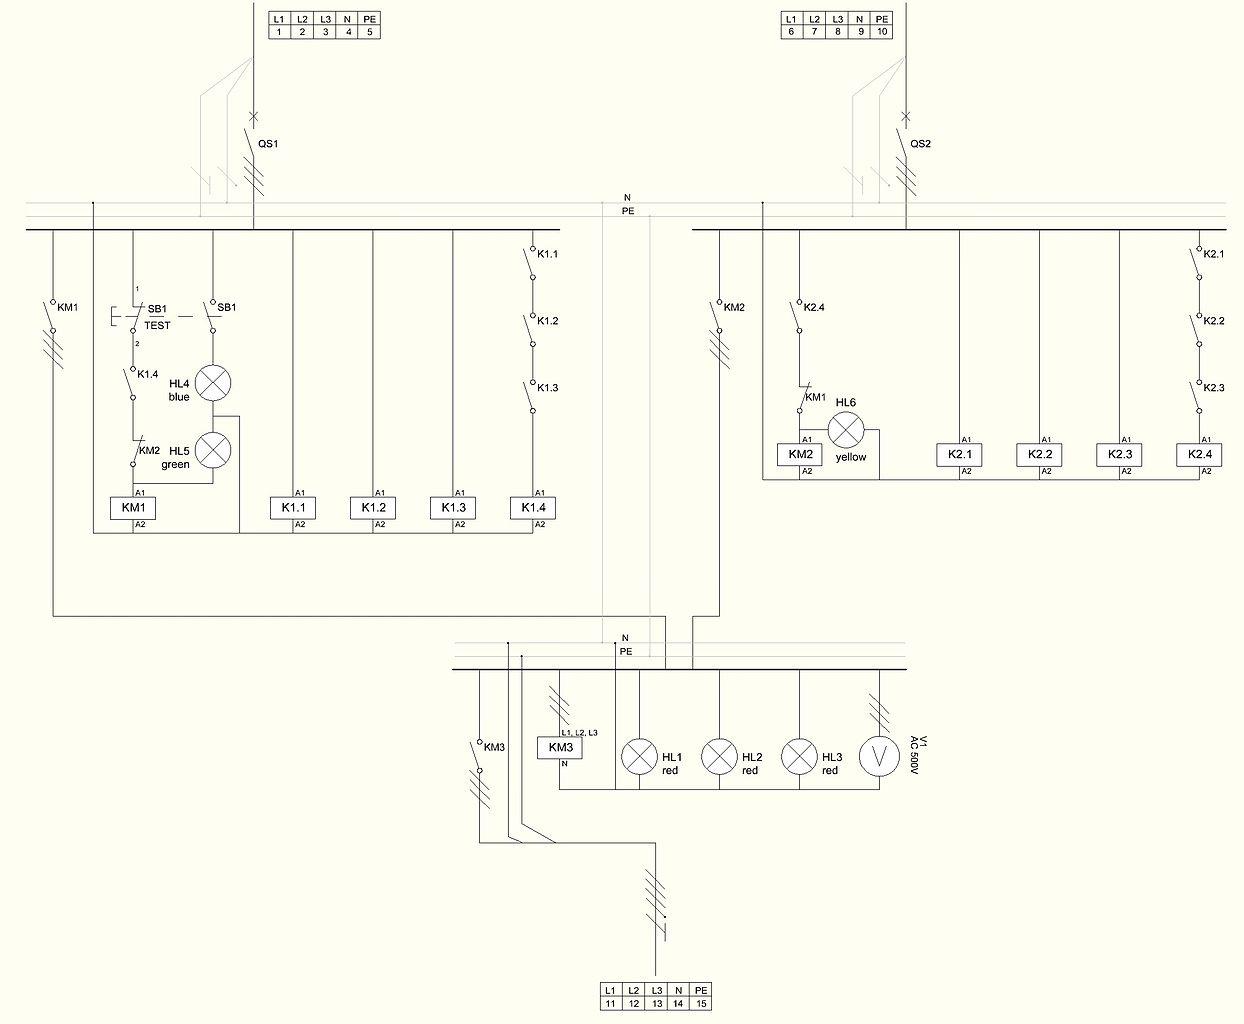 wiring diagram 208 volt single phase heater get free image about wiring diagram